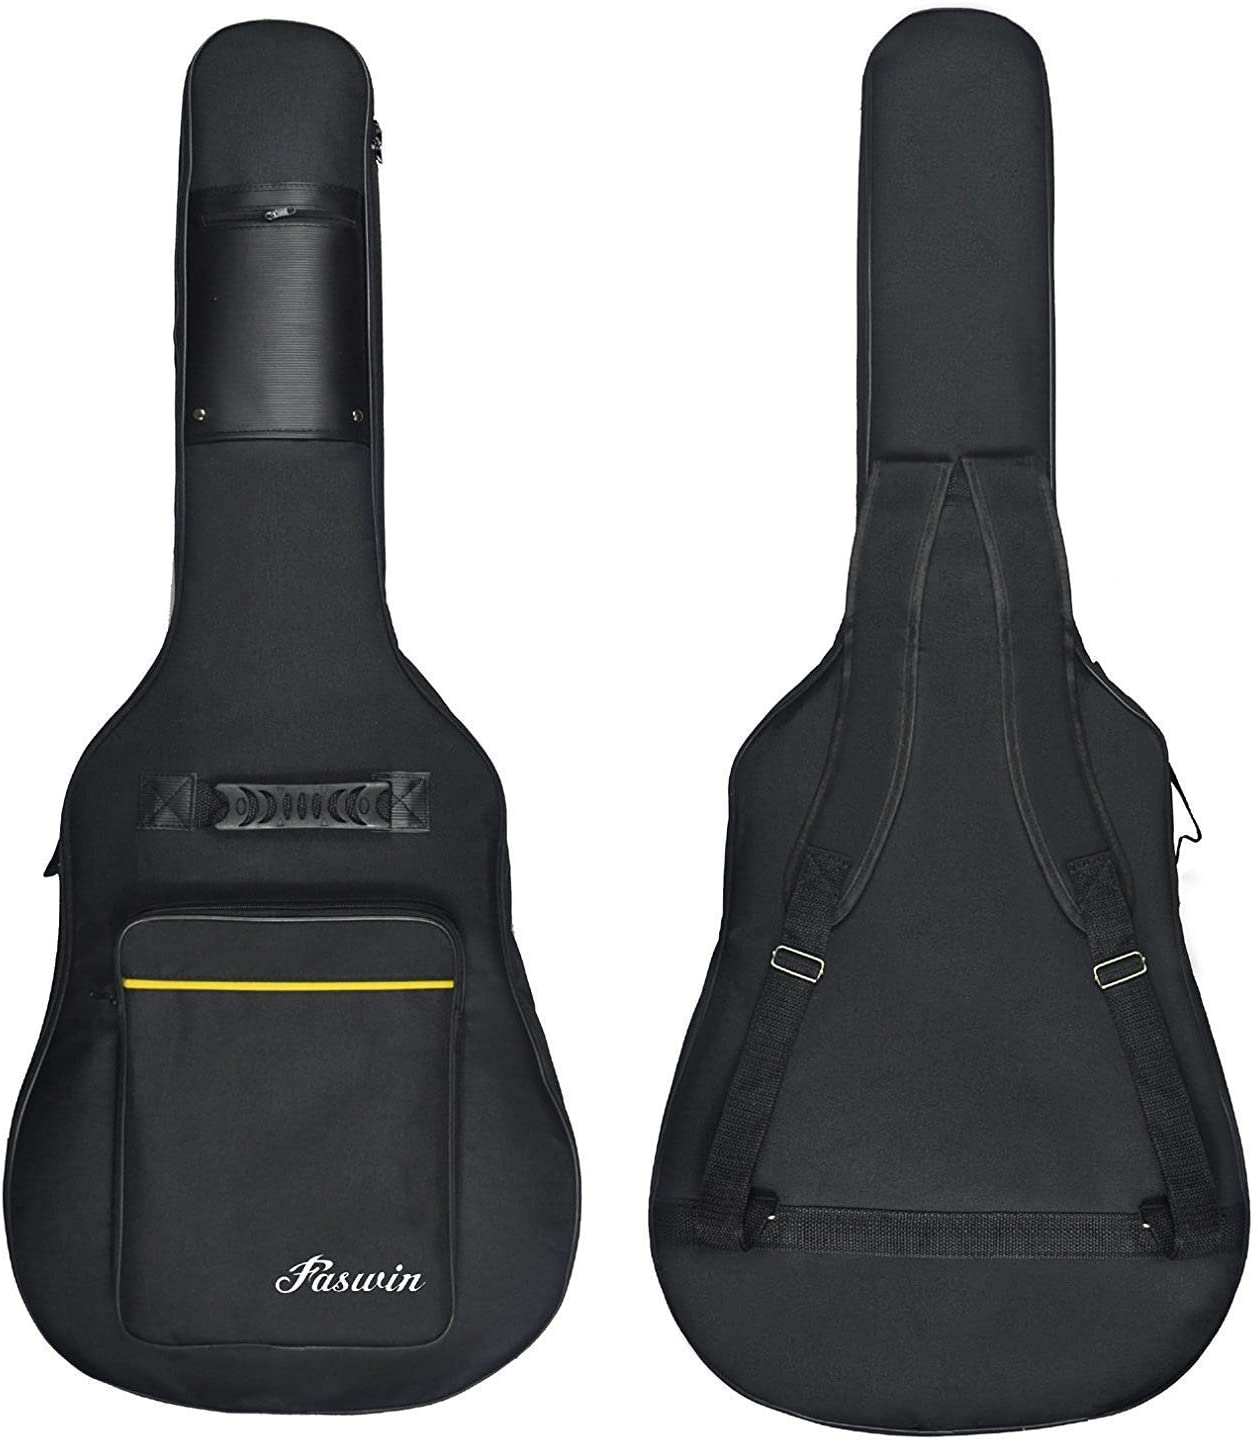 Faswin 41 Inch Guitar Bag Dual - Protective Guitar Cases